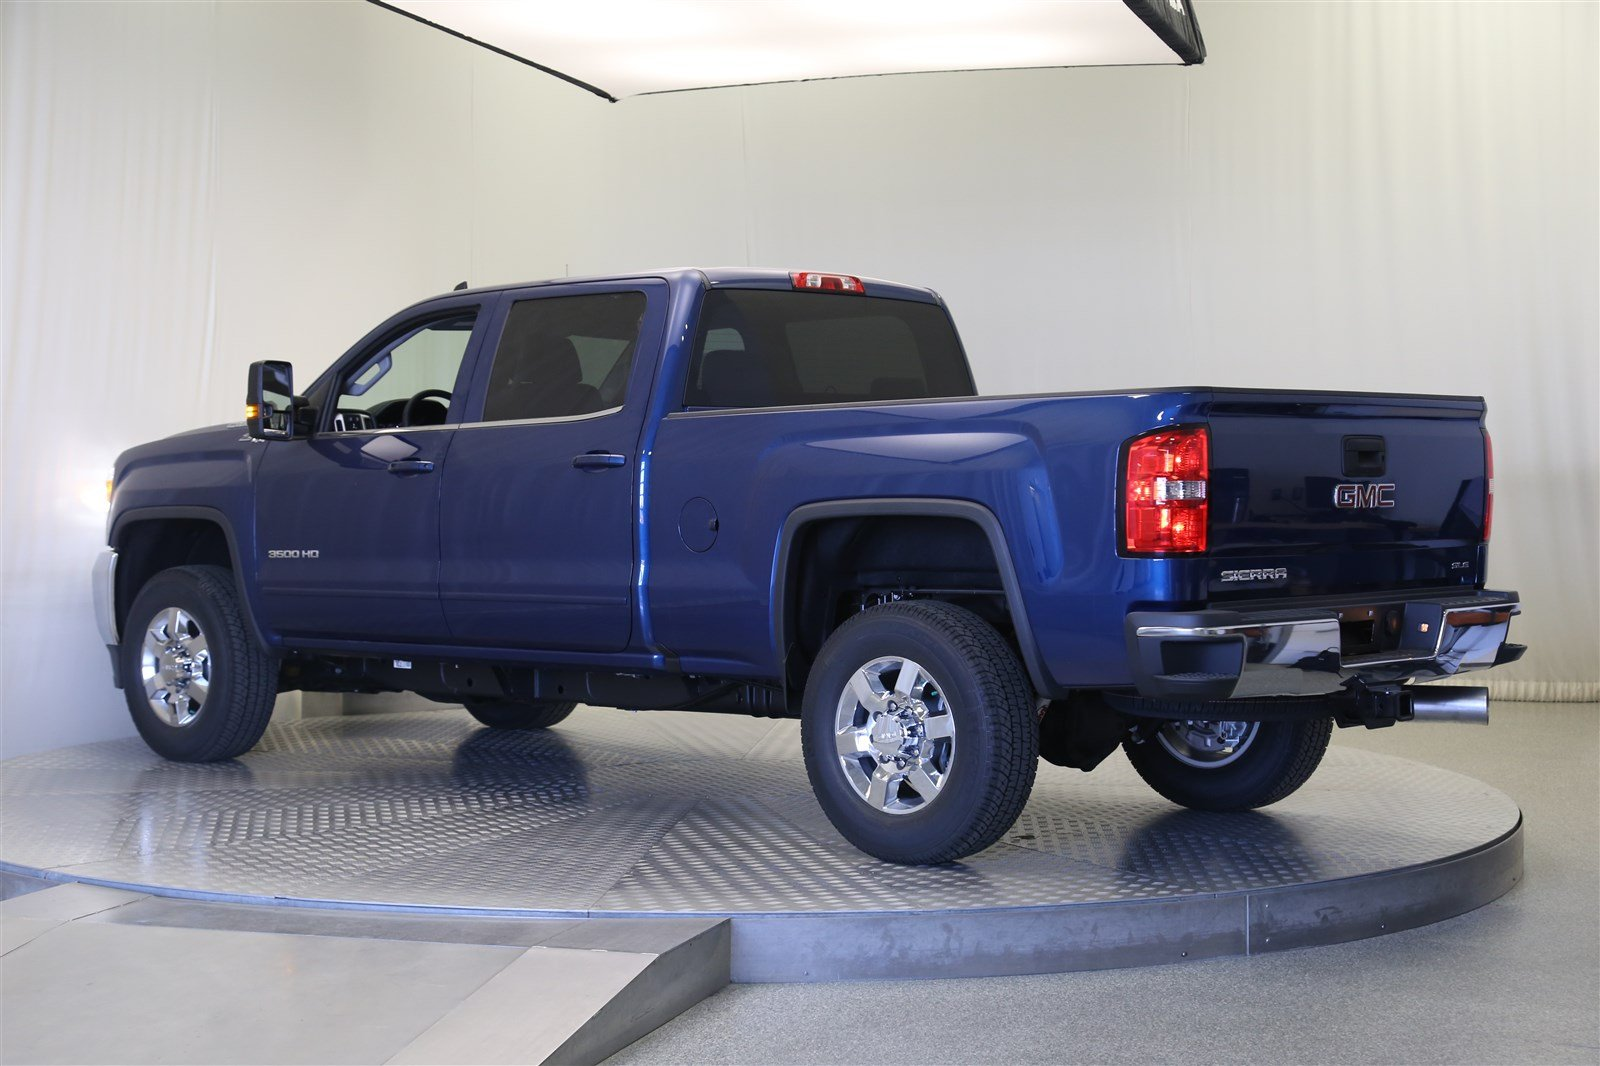 crew san base cab inventory in sierra gmc rwd jose new